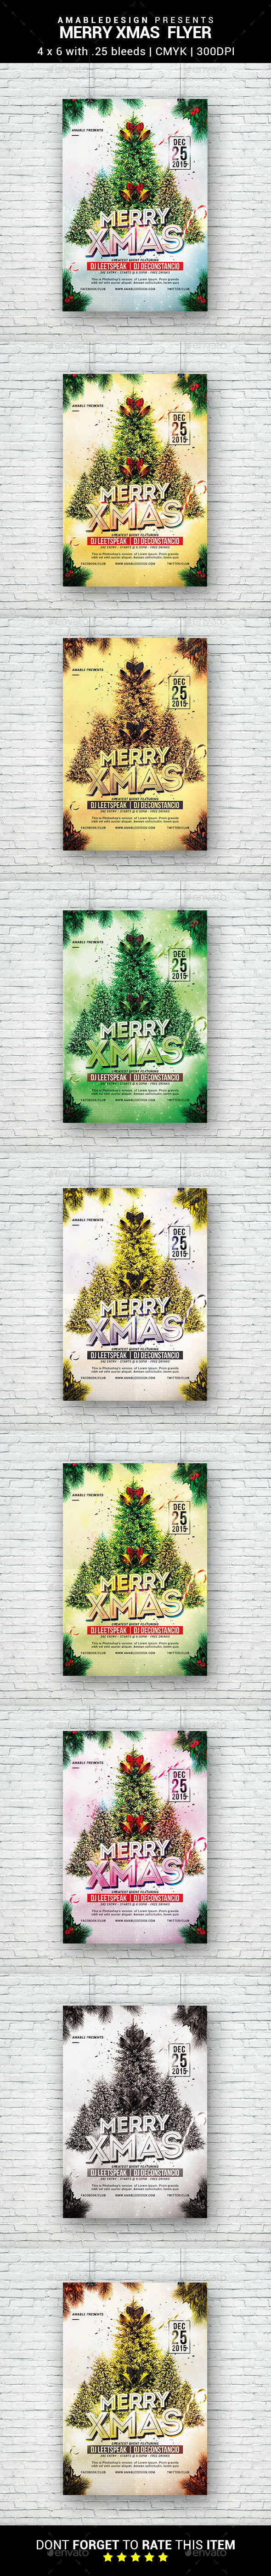 Merry Xmas Flyer - Clubs & Parties Events